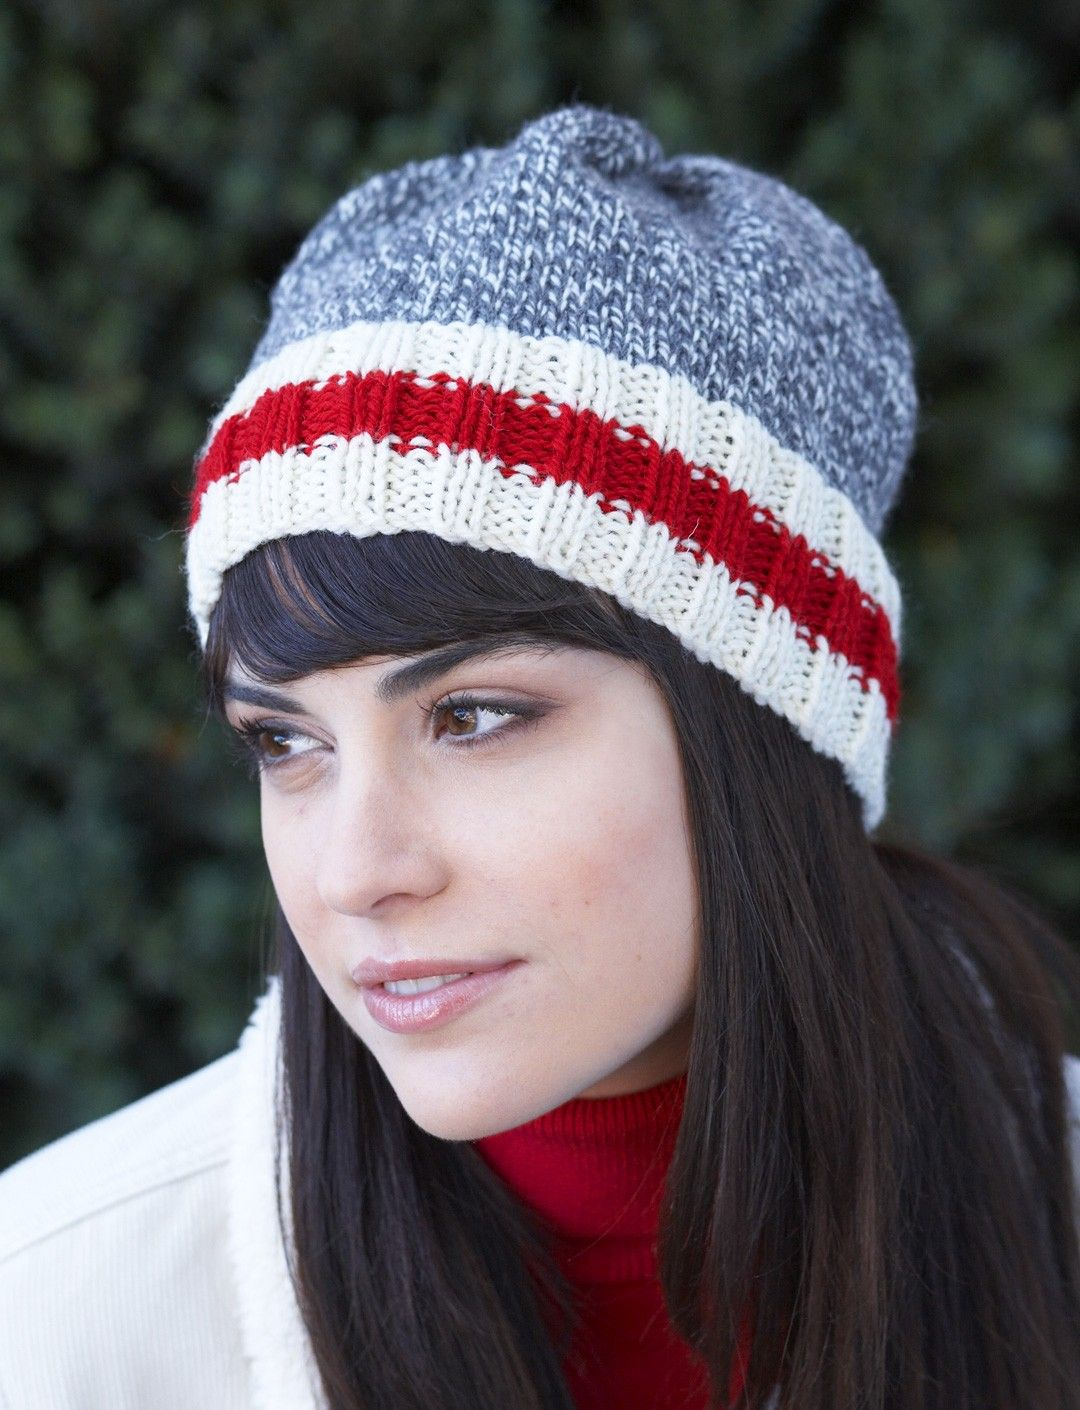 Work sock hat tuque bas de laine pinterest work socks socks free pattern the classic marl and stripes look makes for a cozy knit hat with a subtle splash of color in patons classic wool worsted bankloansurffo Images